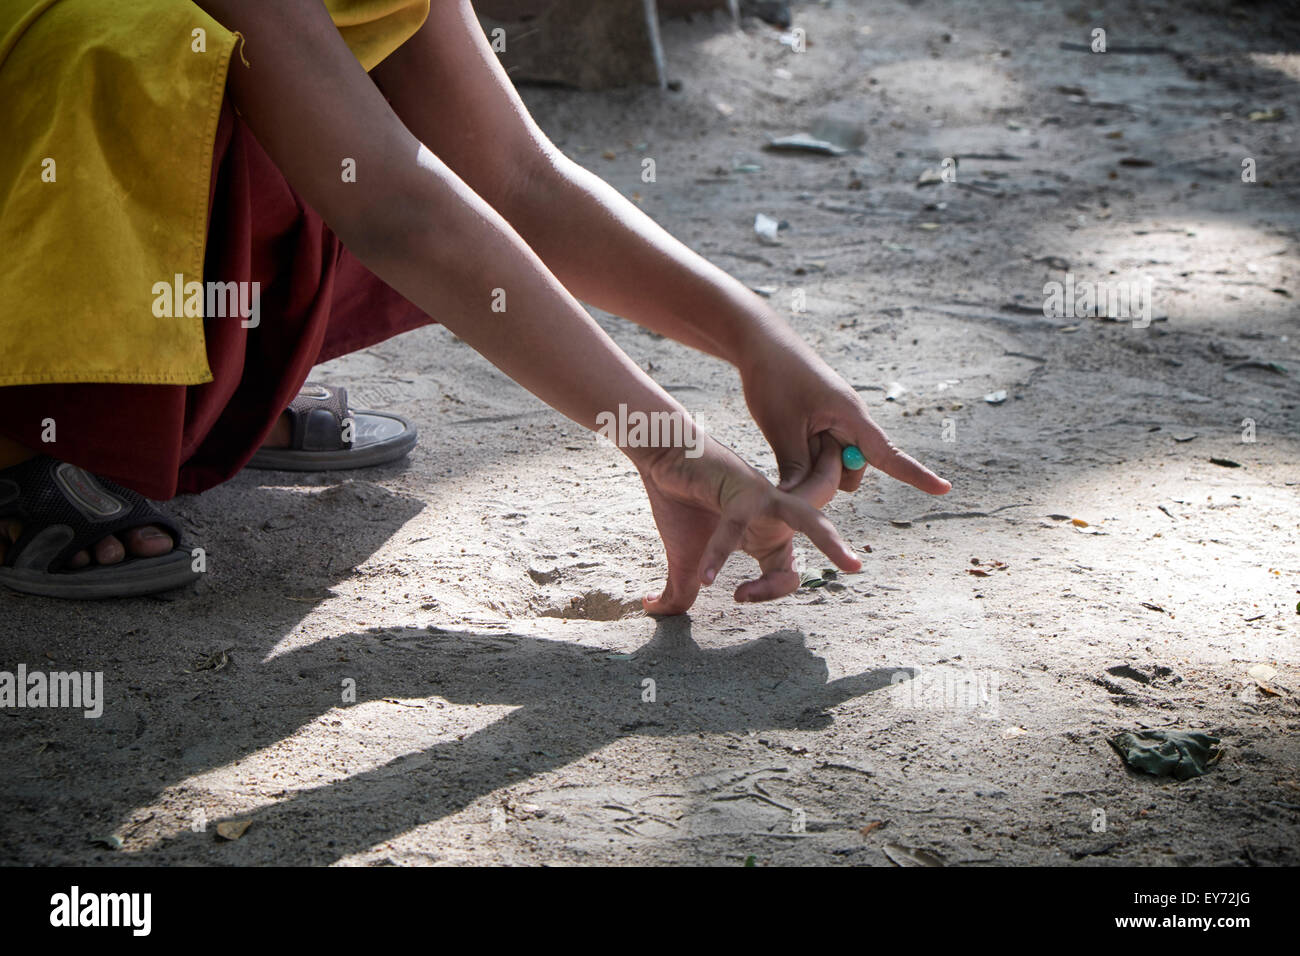 Asian marbles game and shooting technique. Thailand S. E. Asia - Stock Image